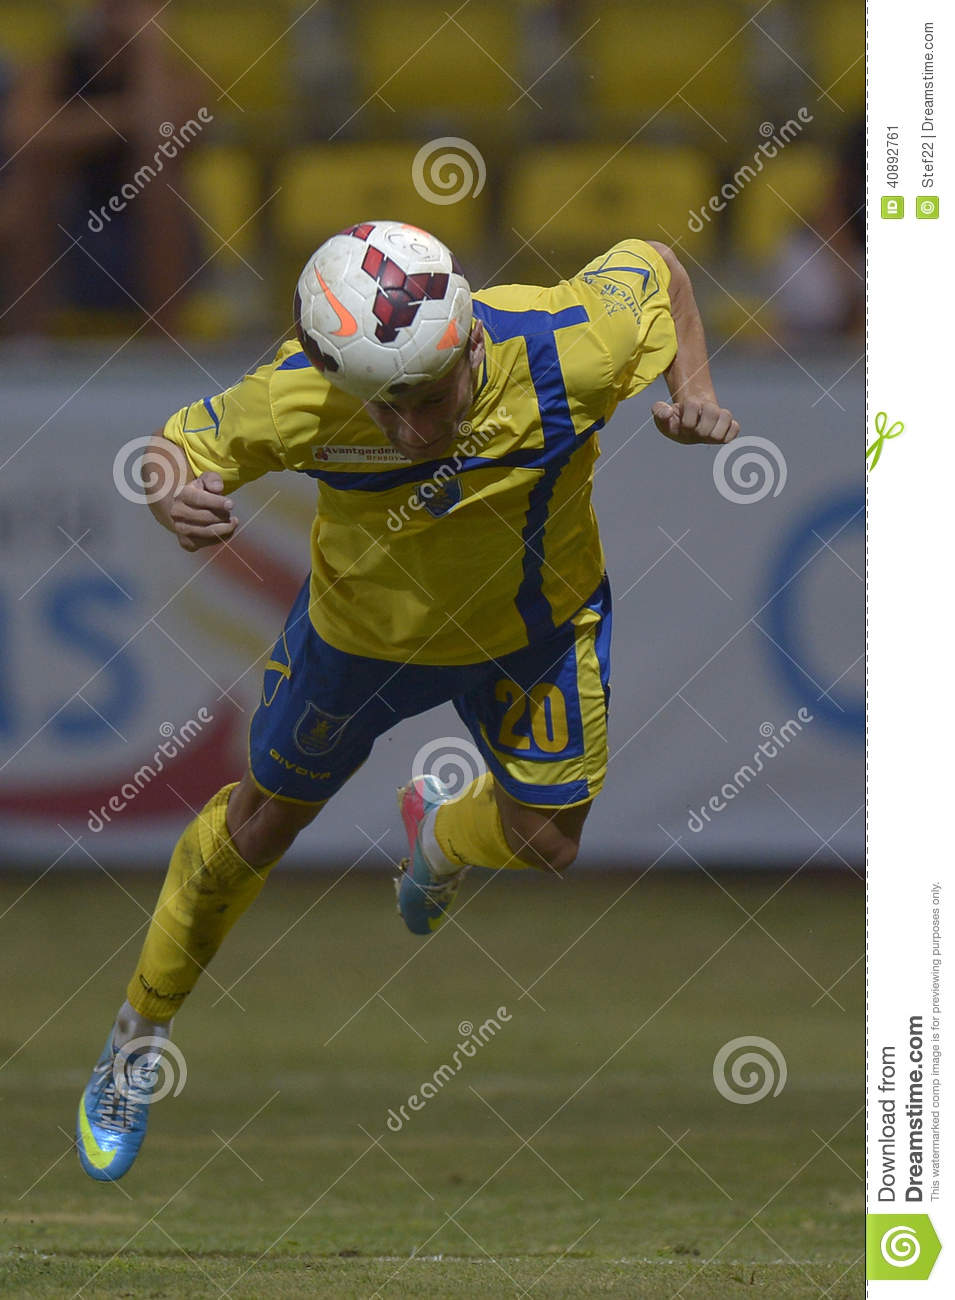 Football diving header